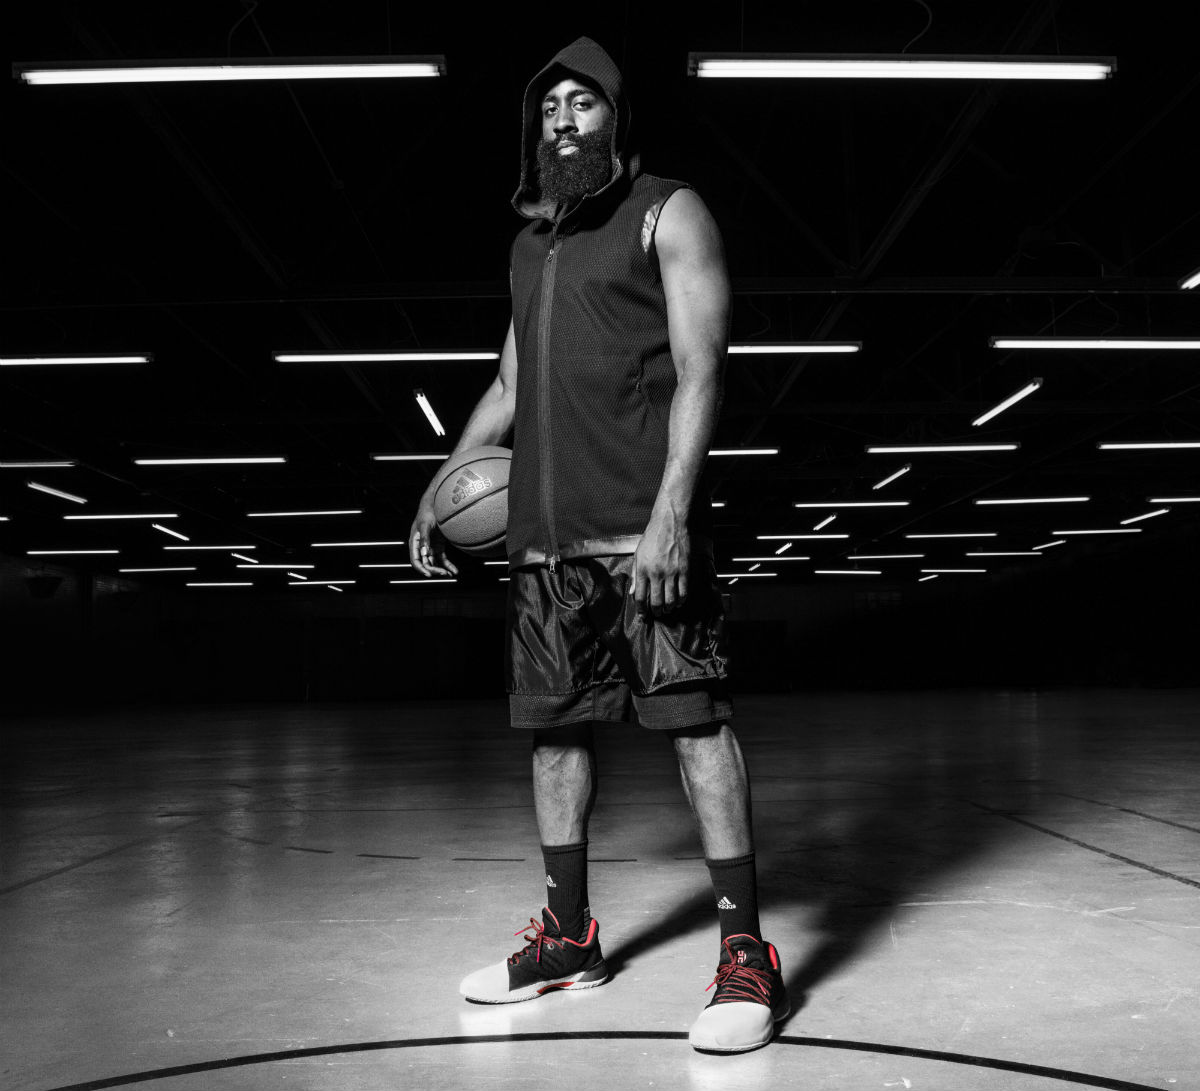 adidas james harden vol 1 sneaker release date complex. Black Bedroom Furniture Sets. Home Design Ideas